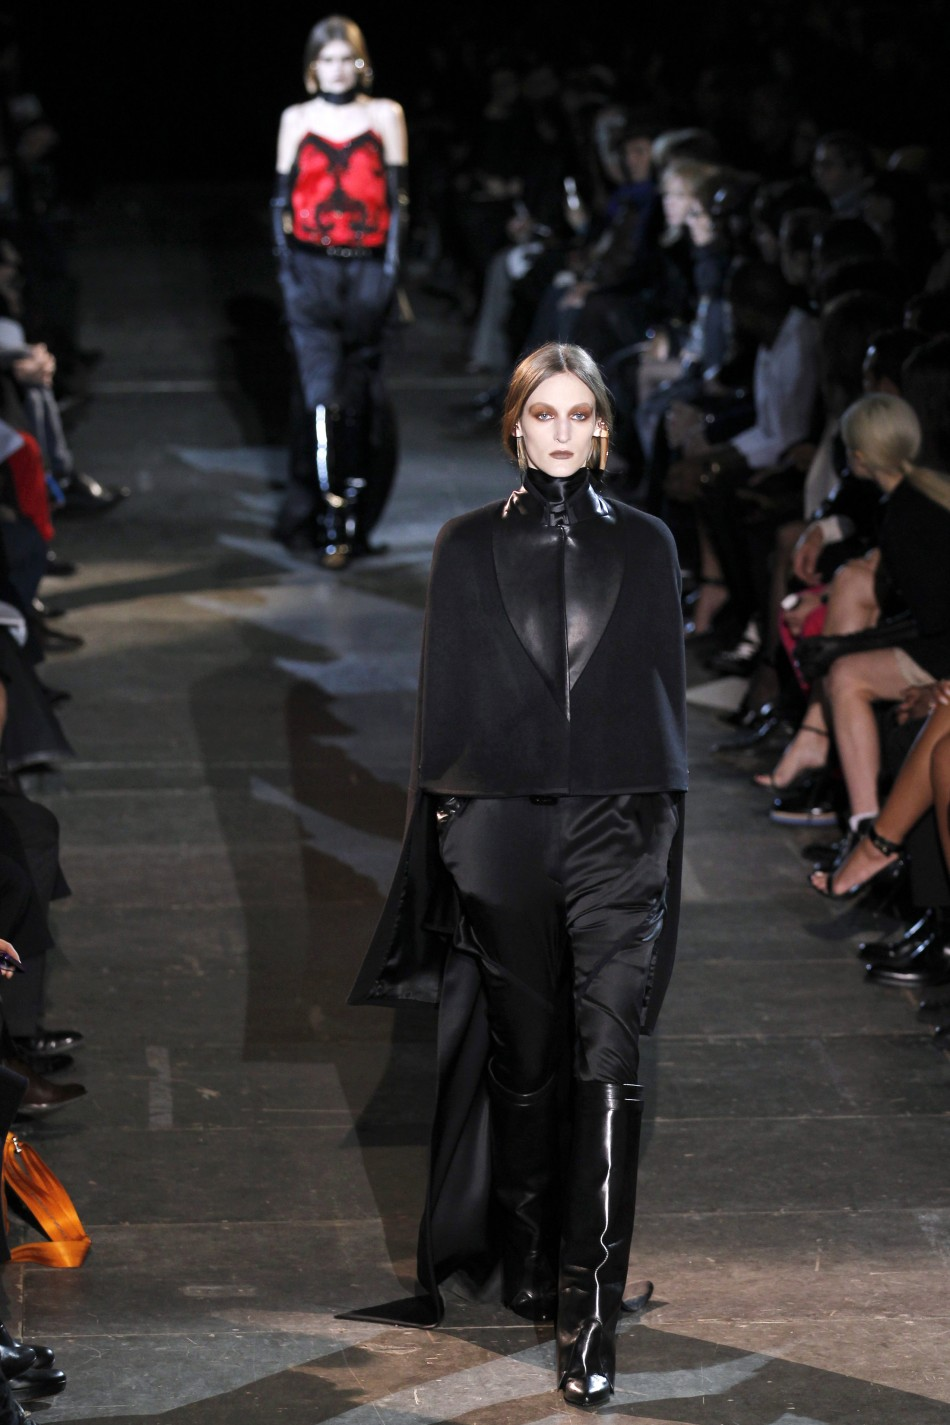 Riccardo Tisci's Equestrian Collection for Givenchy at Paris Fashion Week